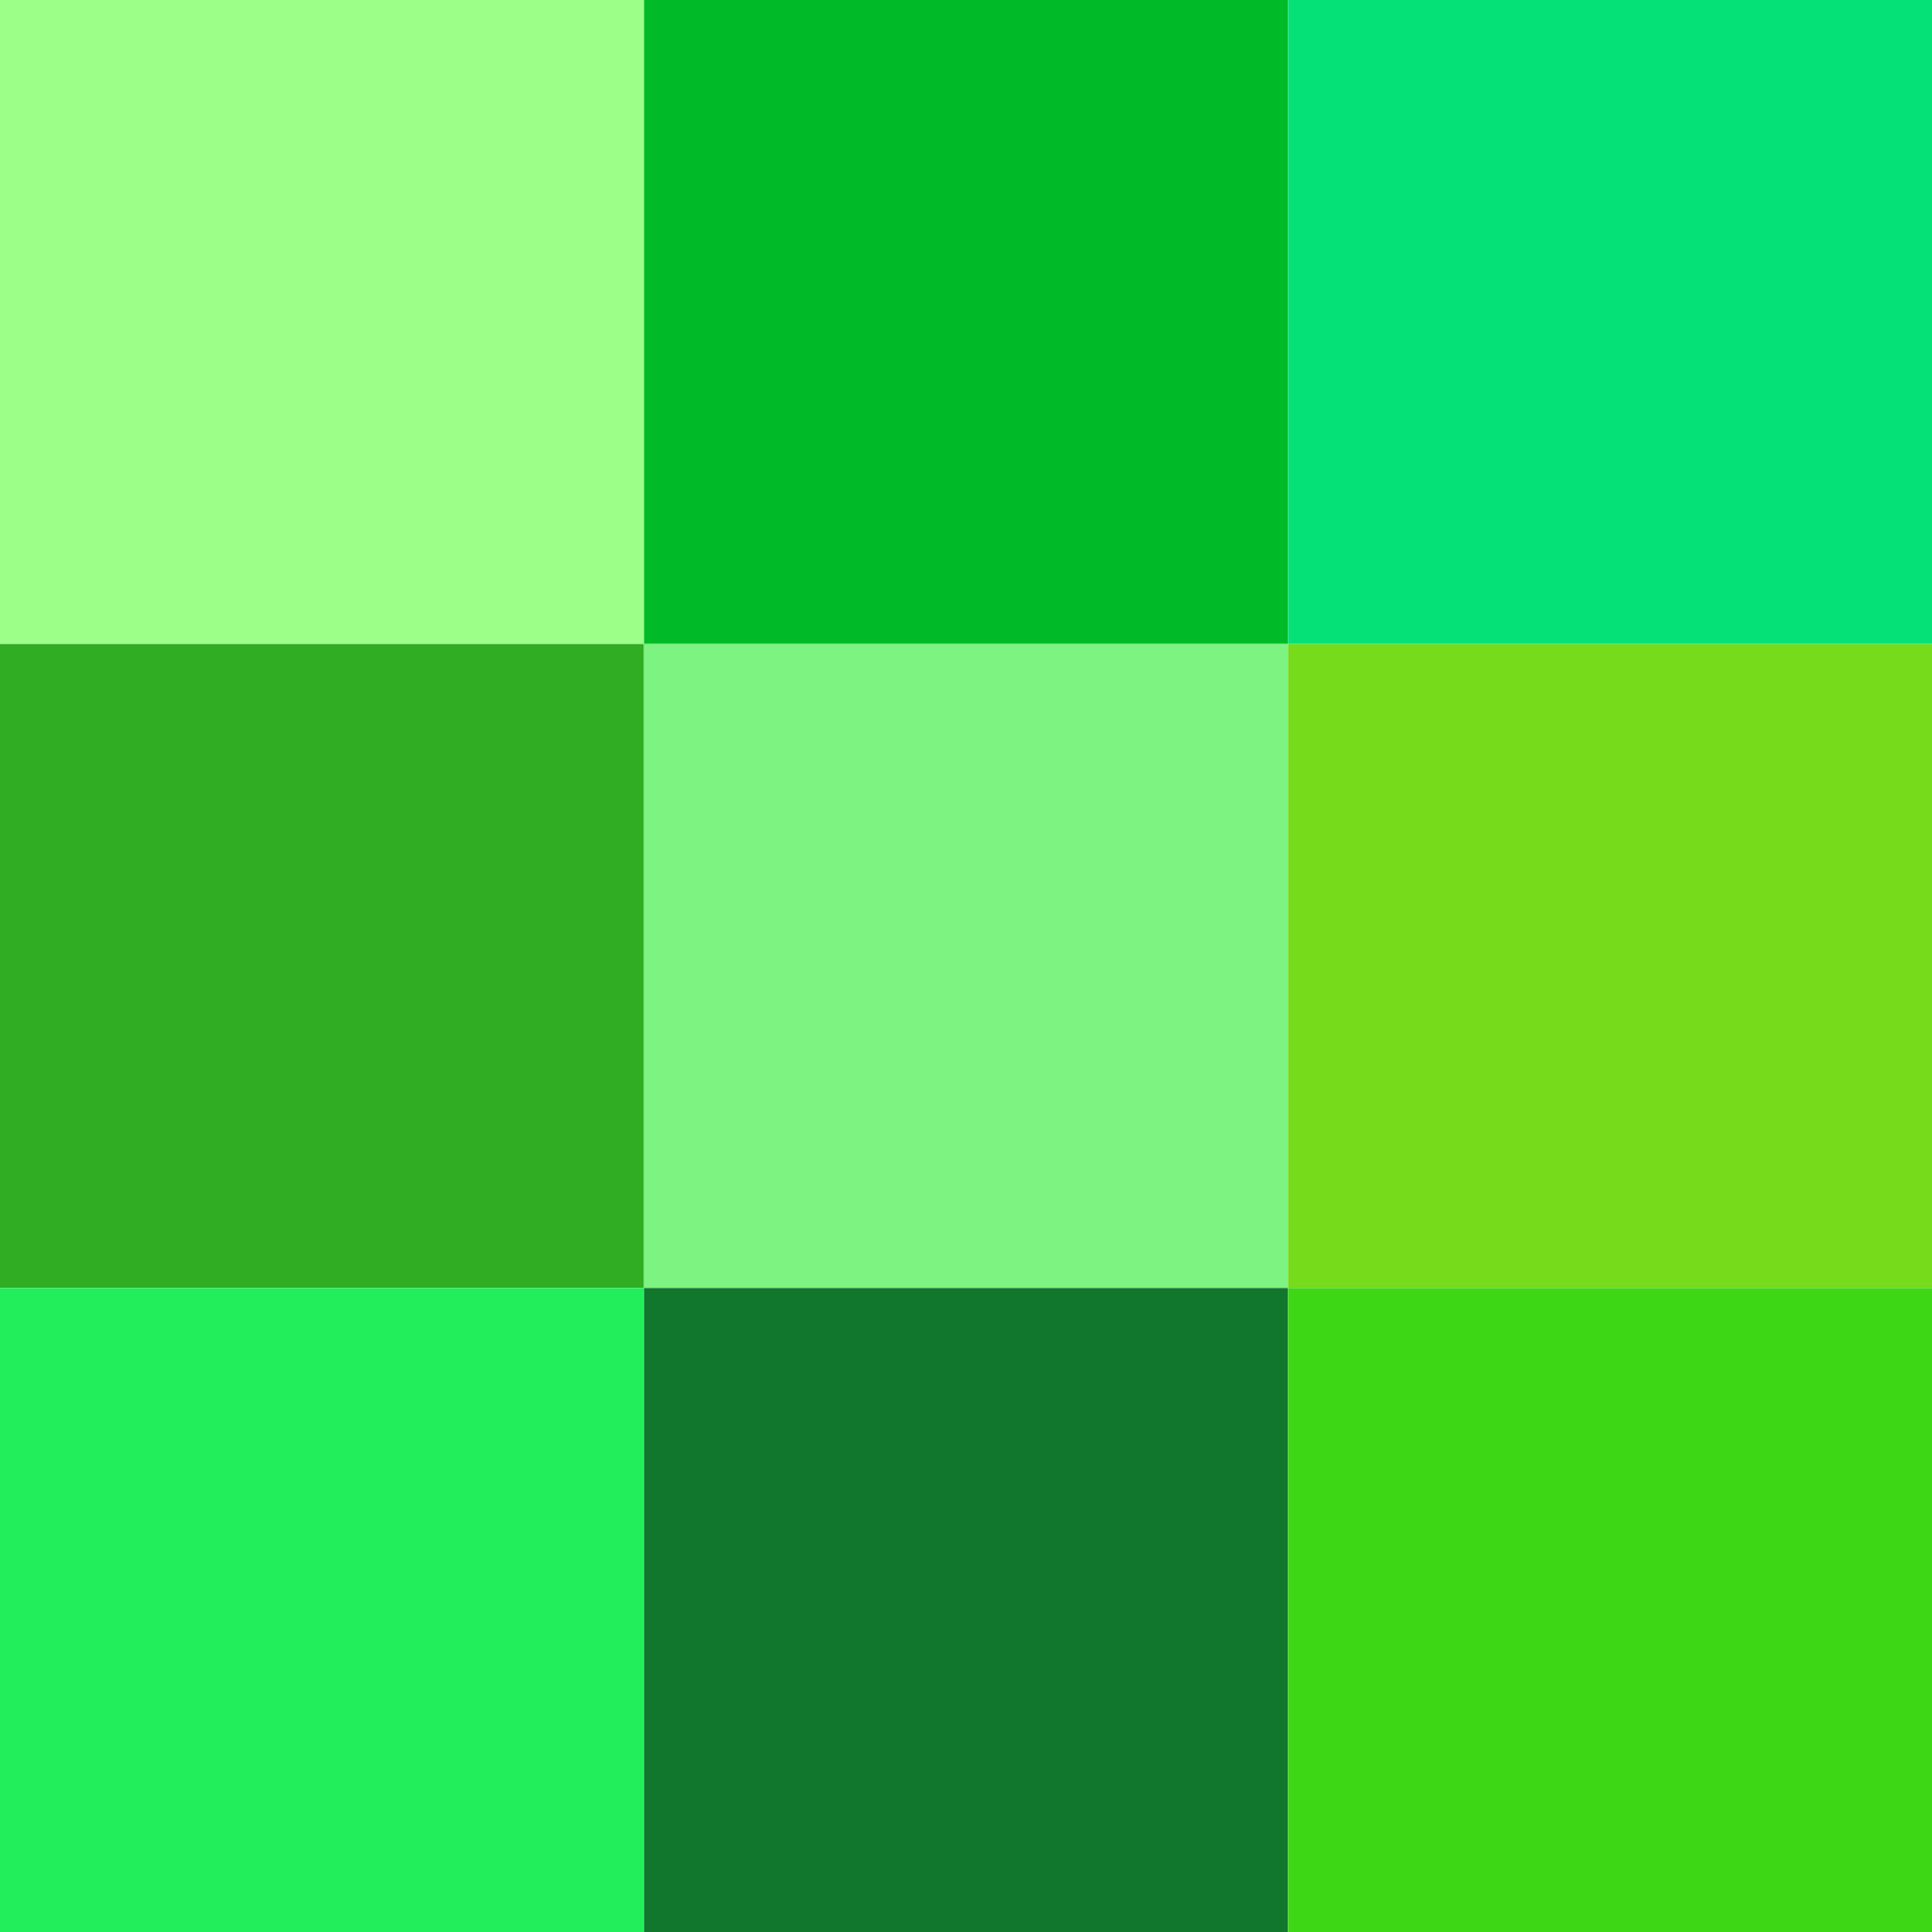 Shades of green wikipedia the free encyclopedia art for Colors shades of green